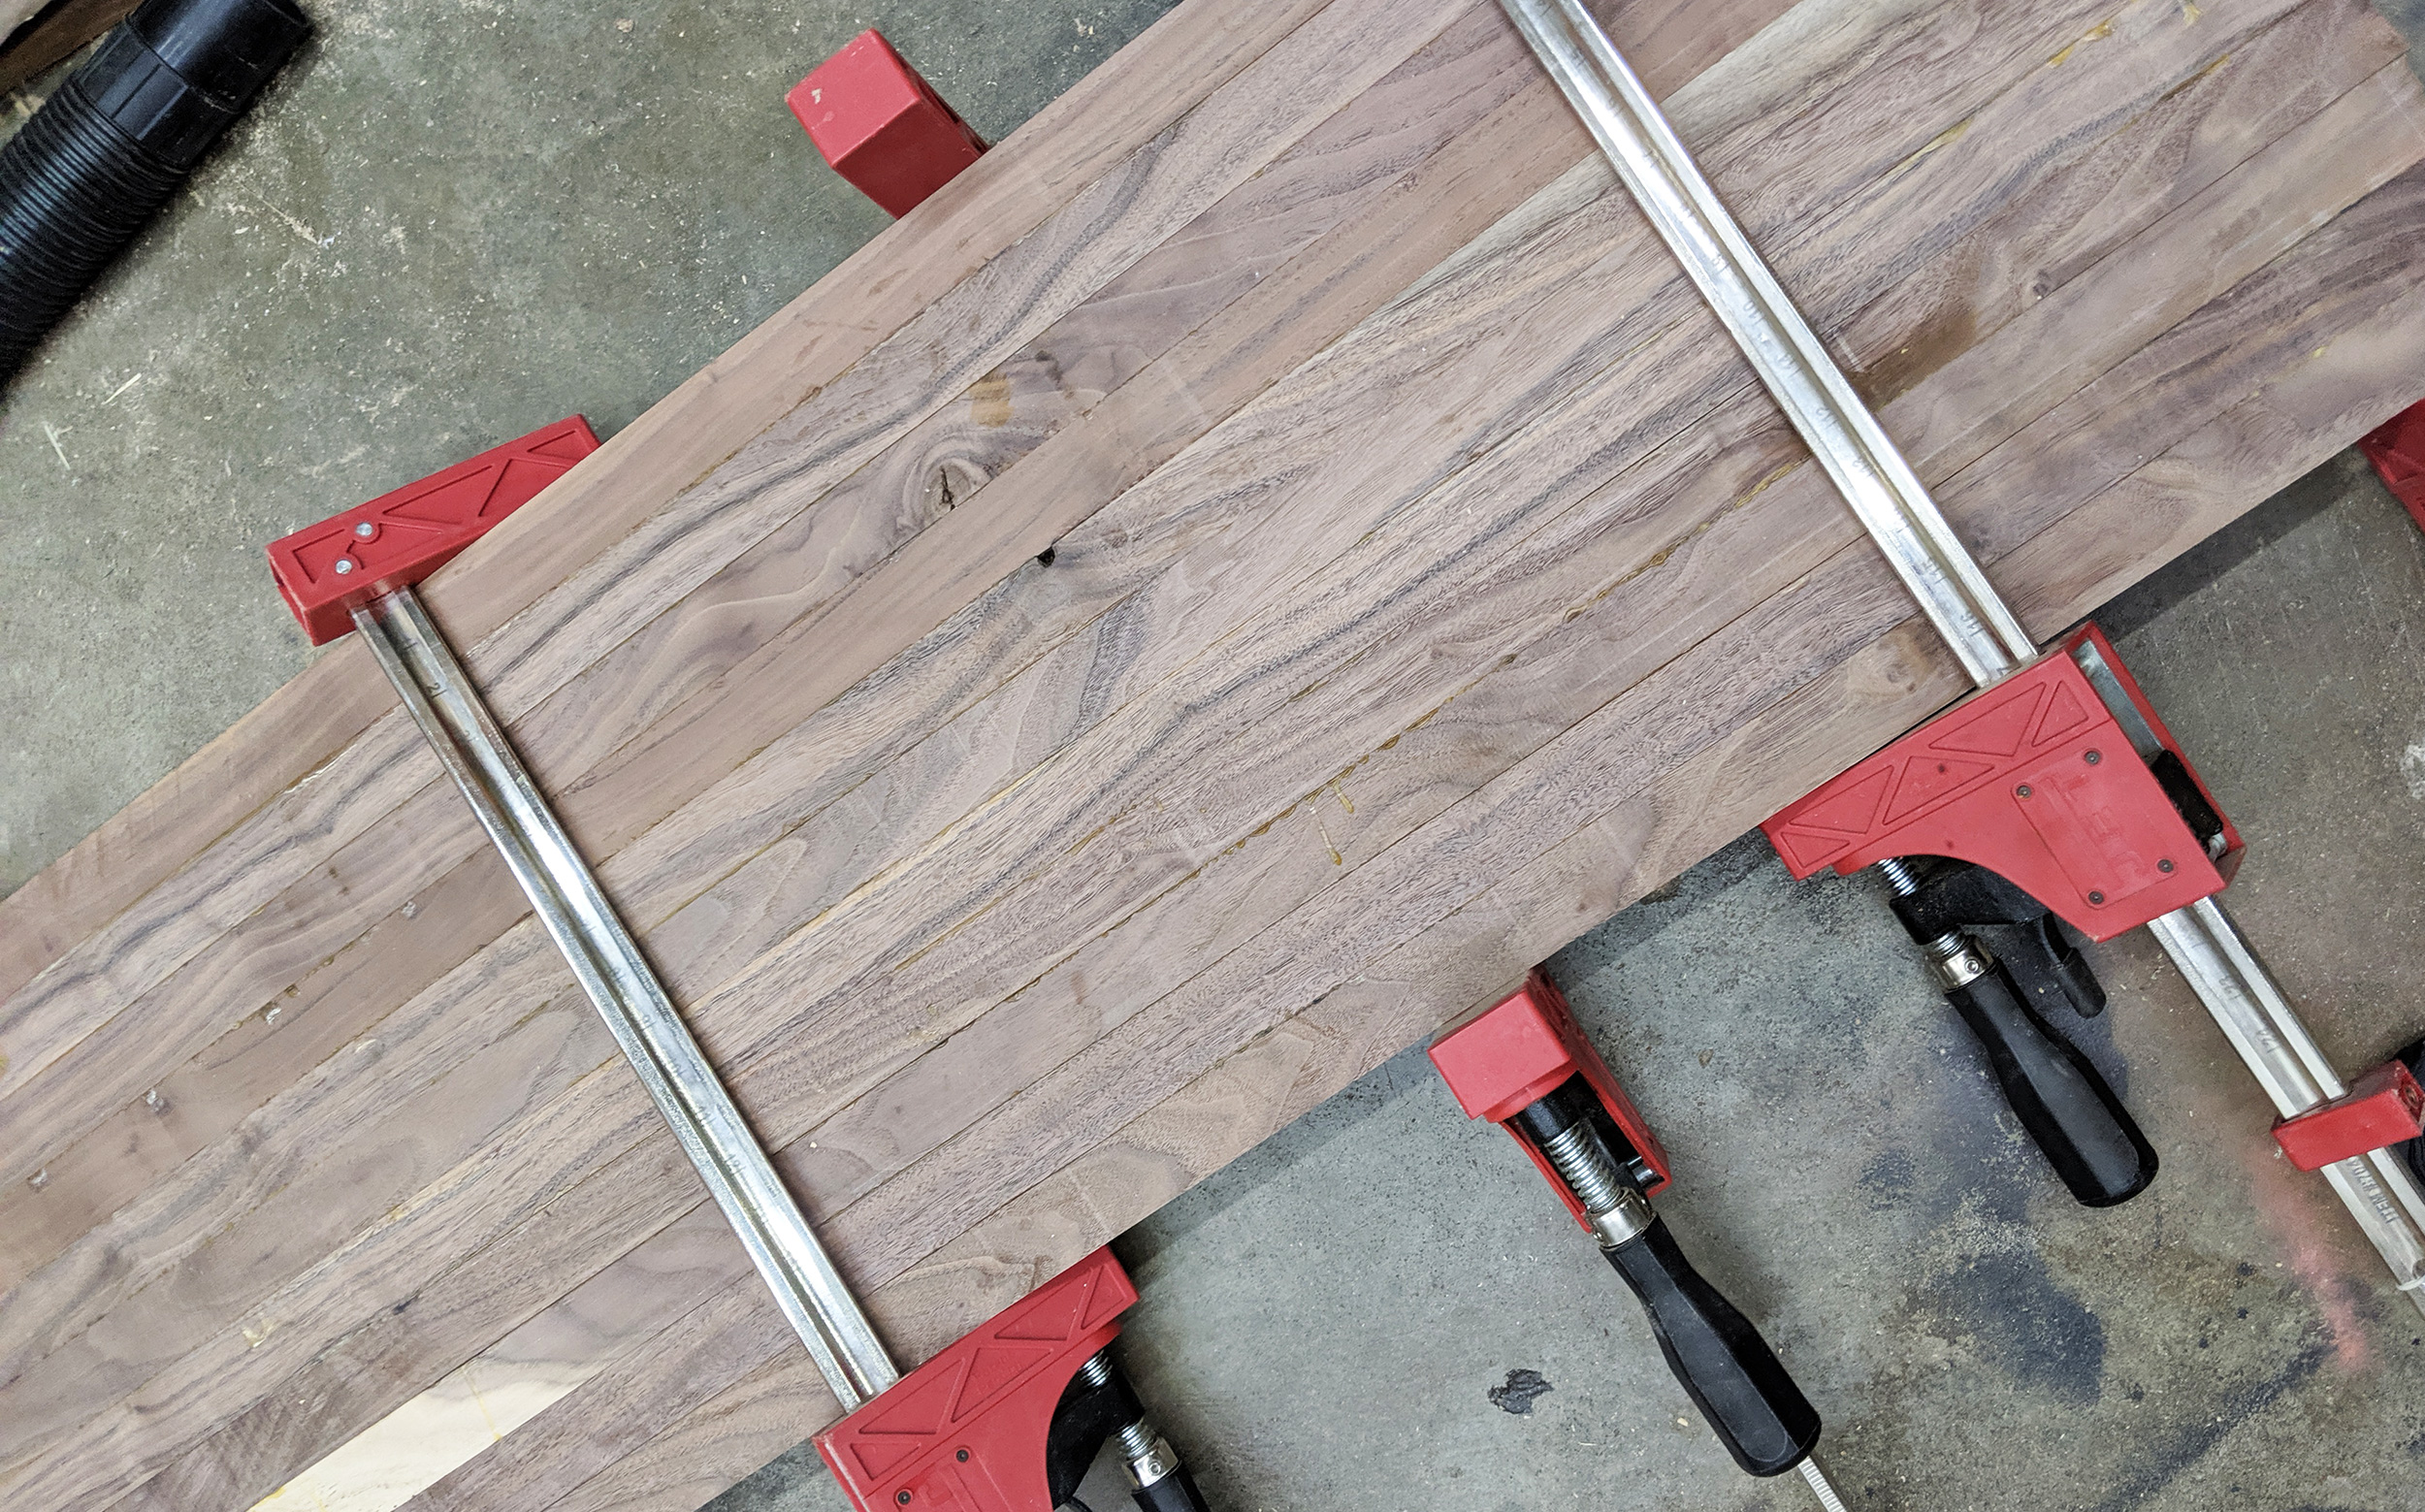 First Laminated of our walnut cutting boards. This process occurs twice with planing and sandy happening in between